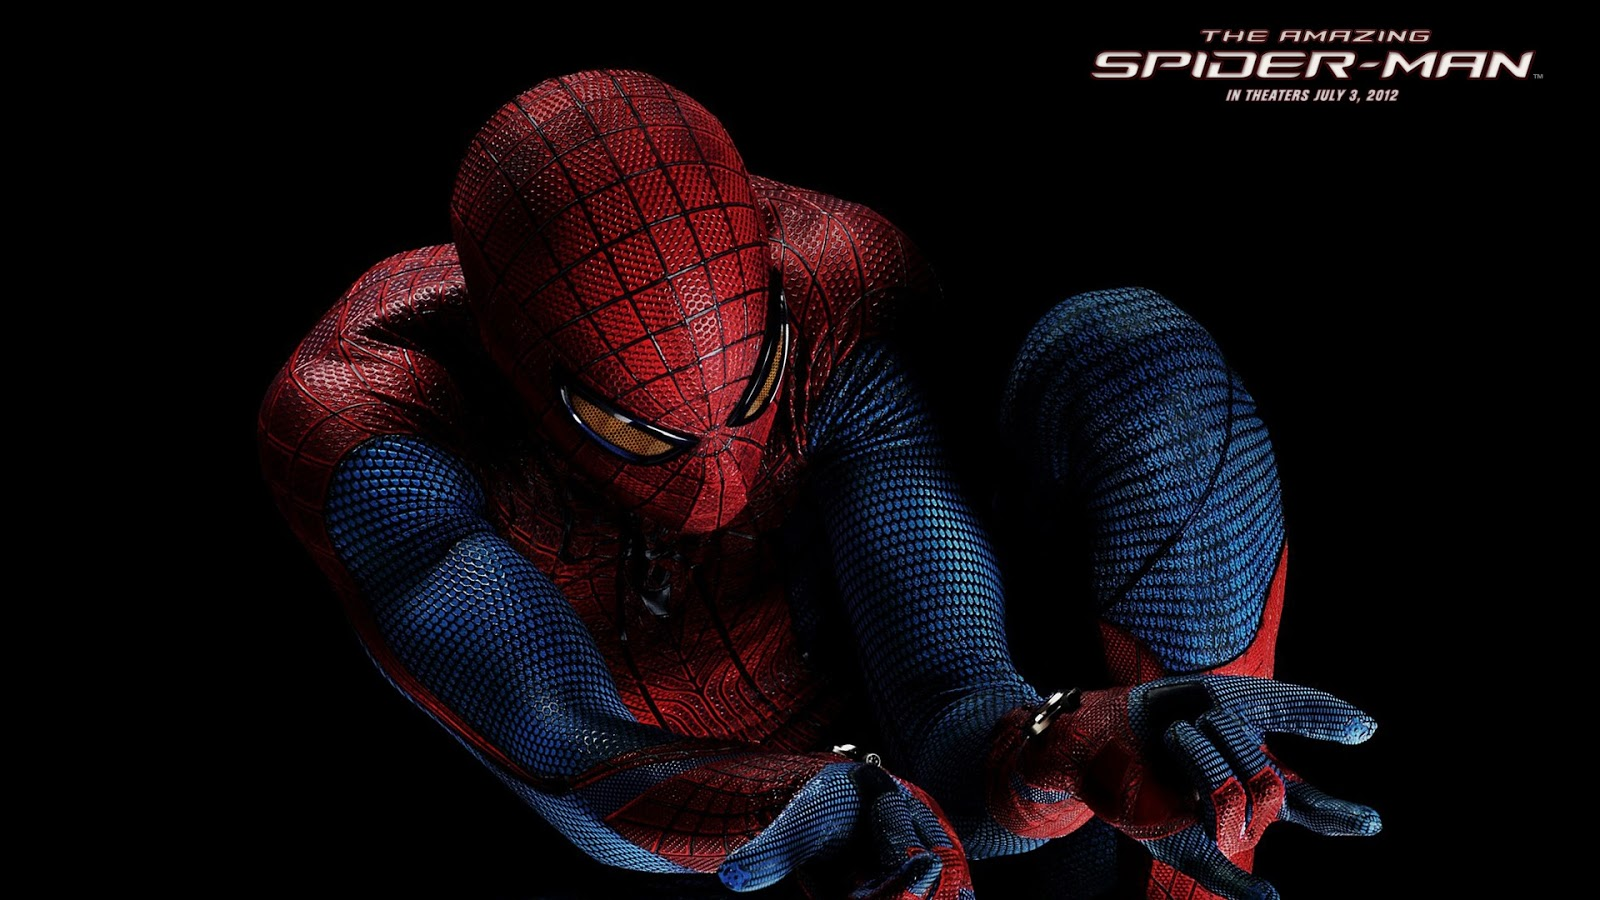 Spiderman 3 Hd Wallpapers 1080p: HD Wallpapers: The Amazing Spiderman (2012) 1080p HD